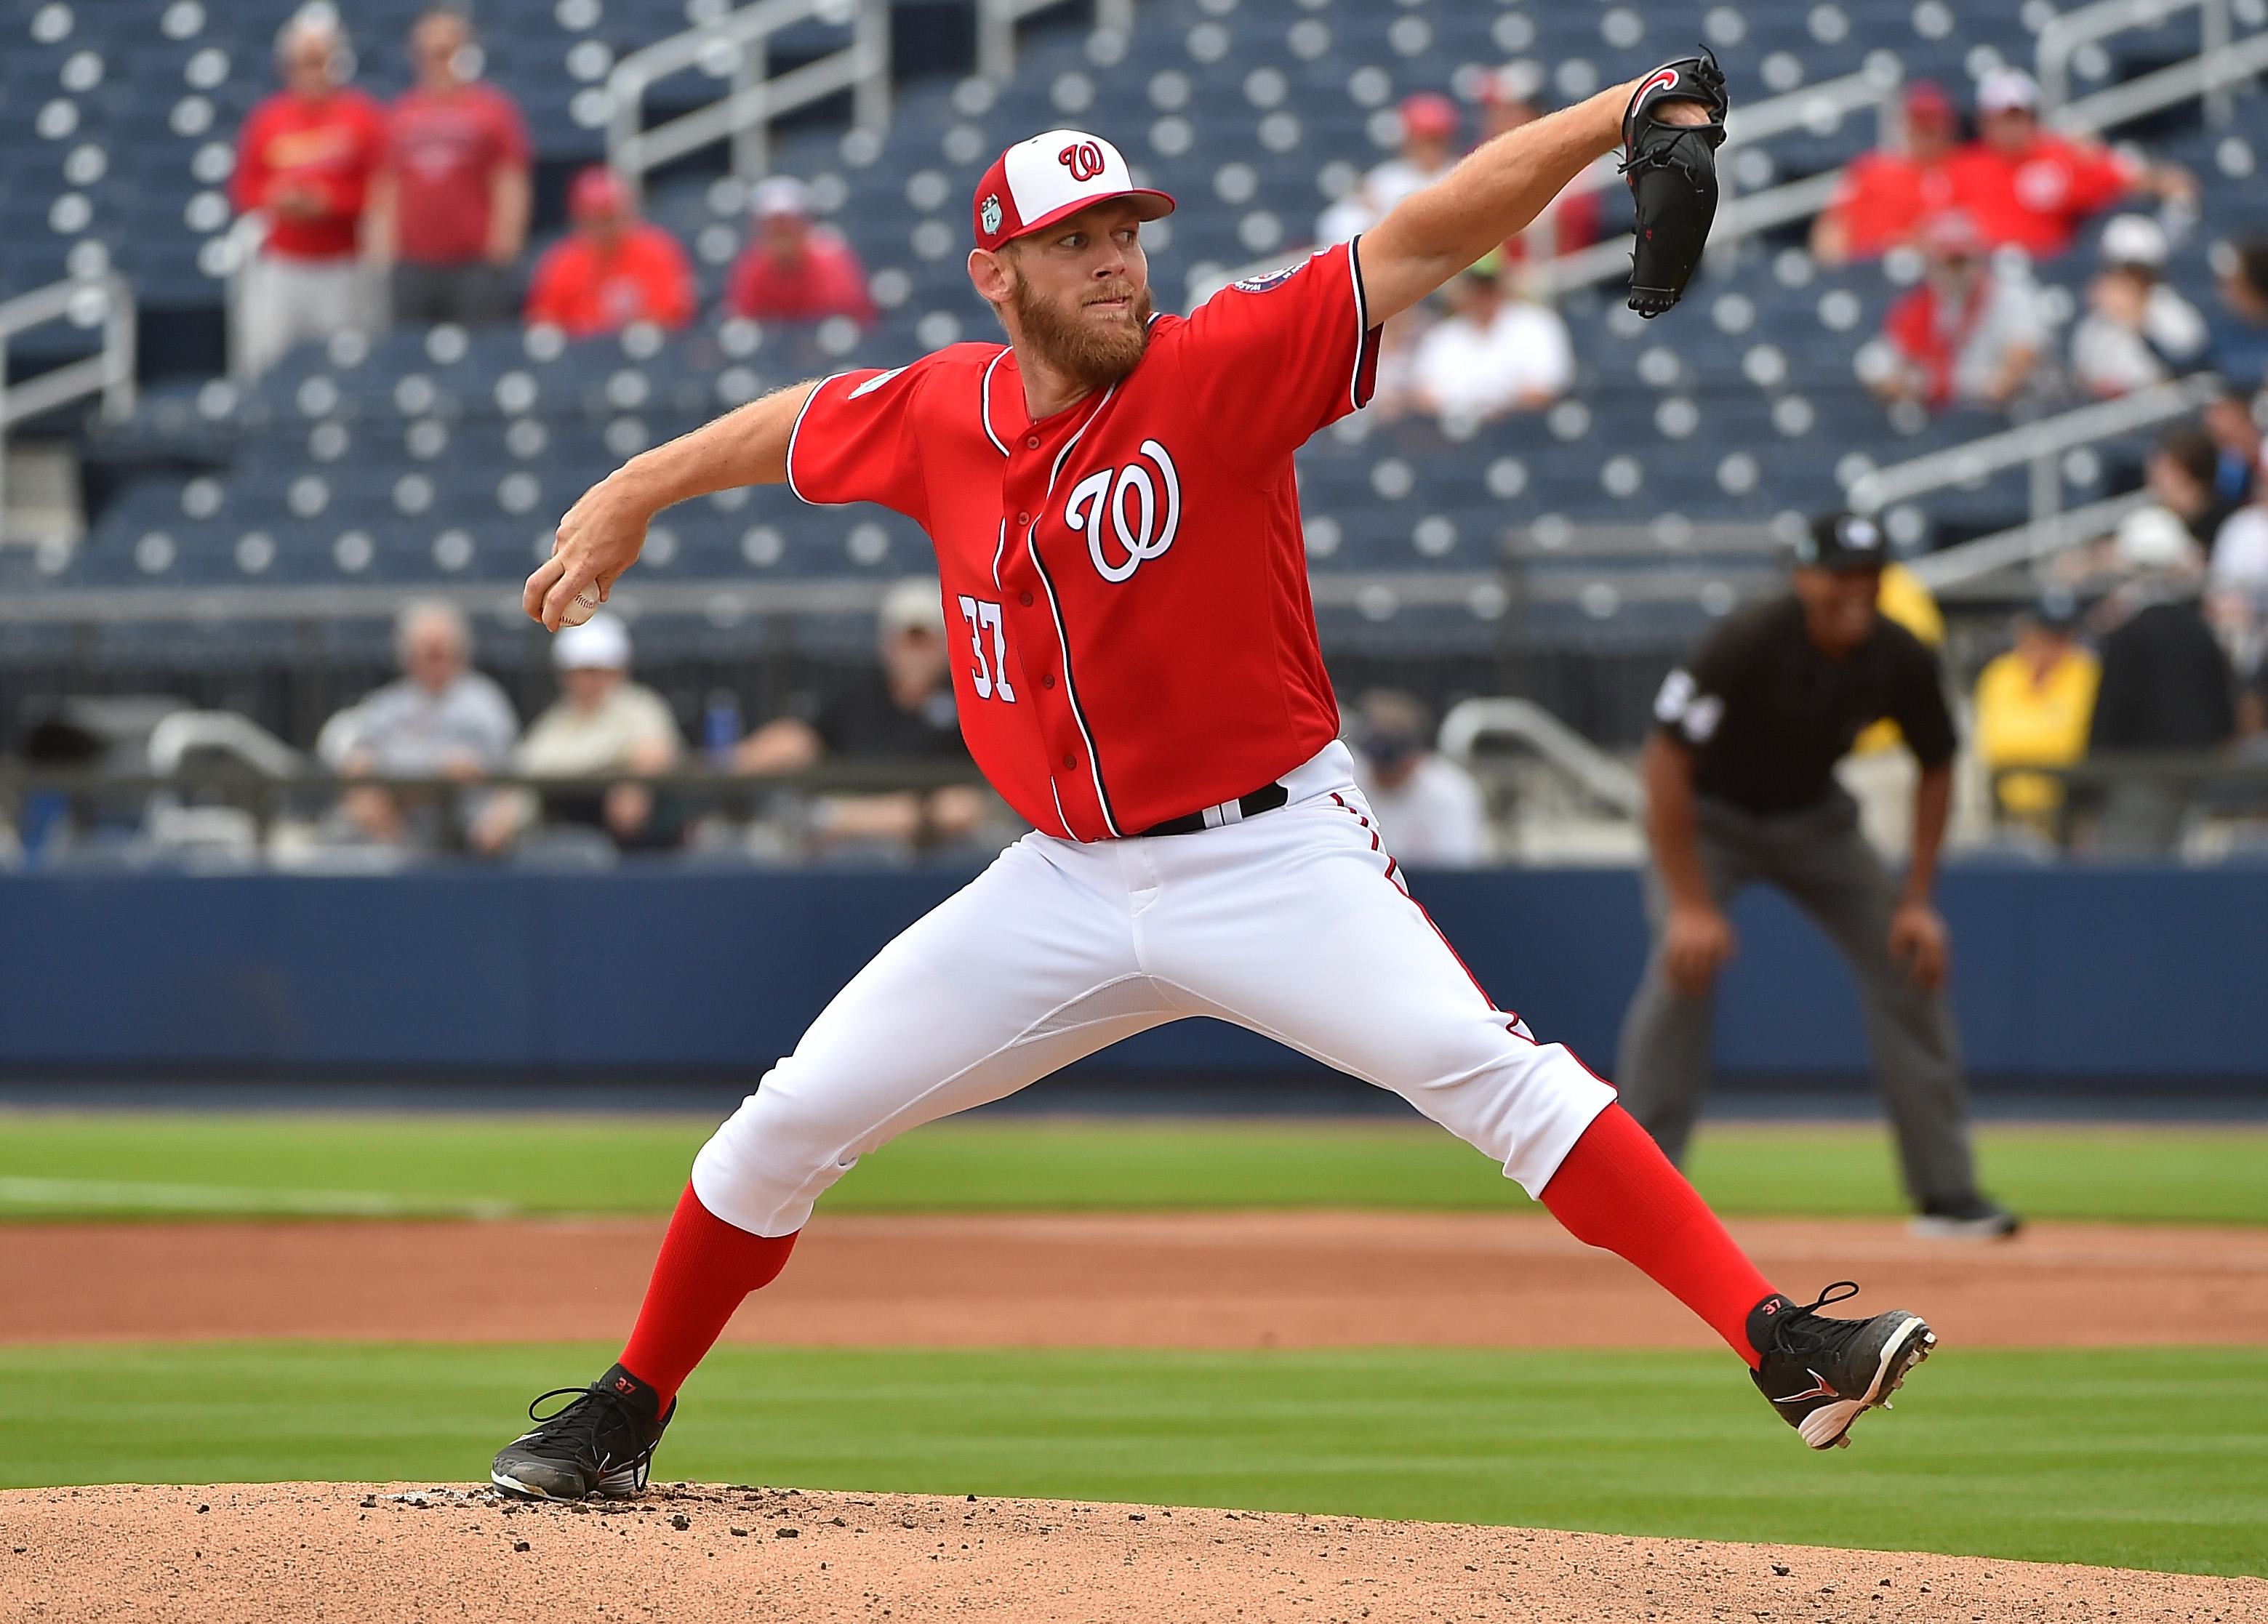 9913633-mlb-spring-training-st.-louis-cardinals-at-washington-nationals